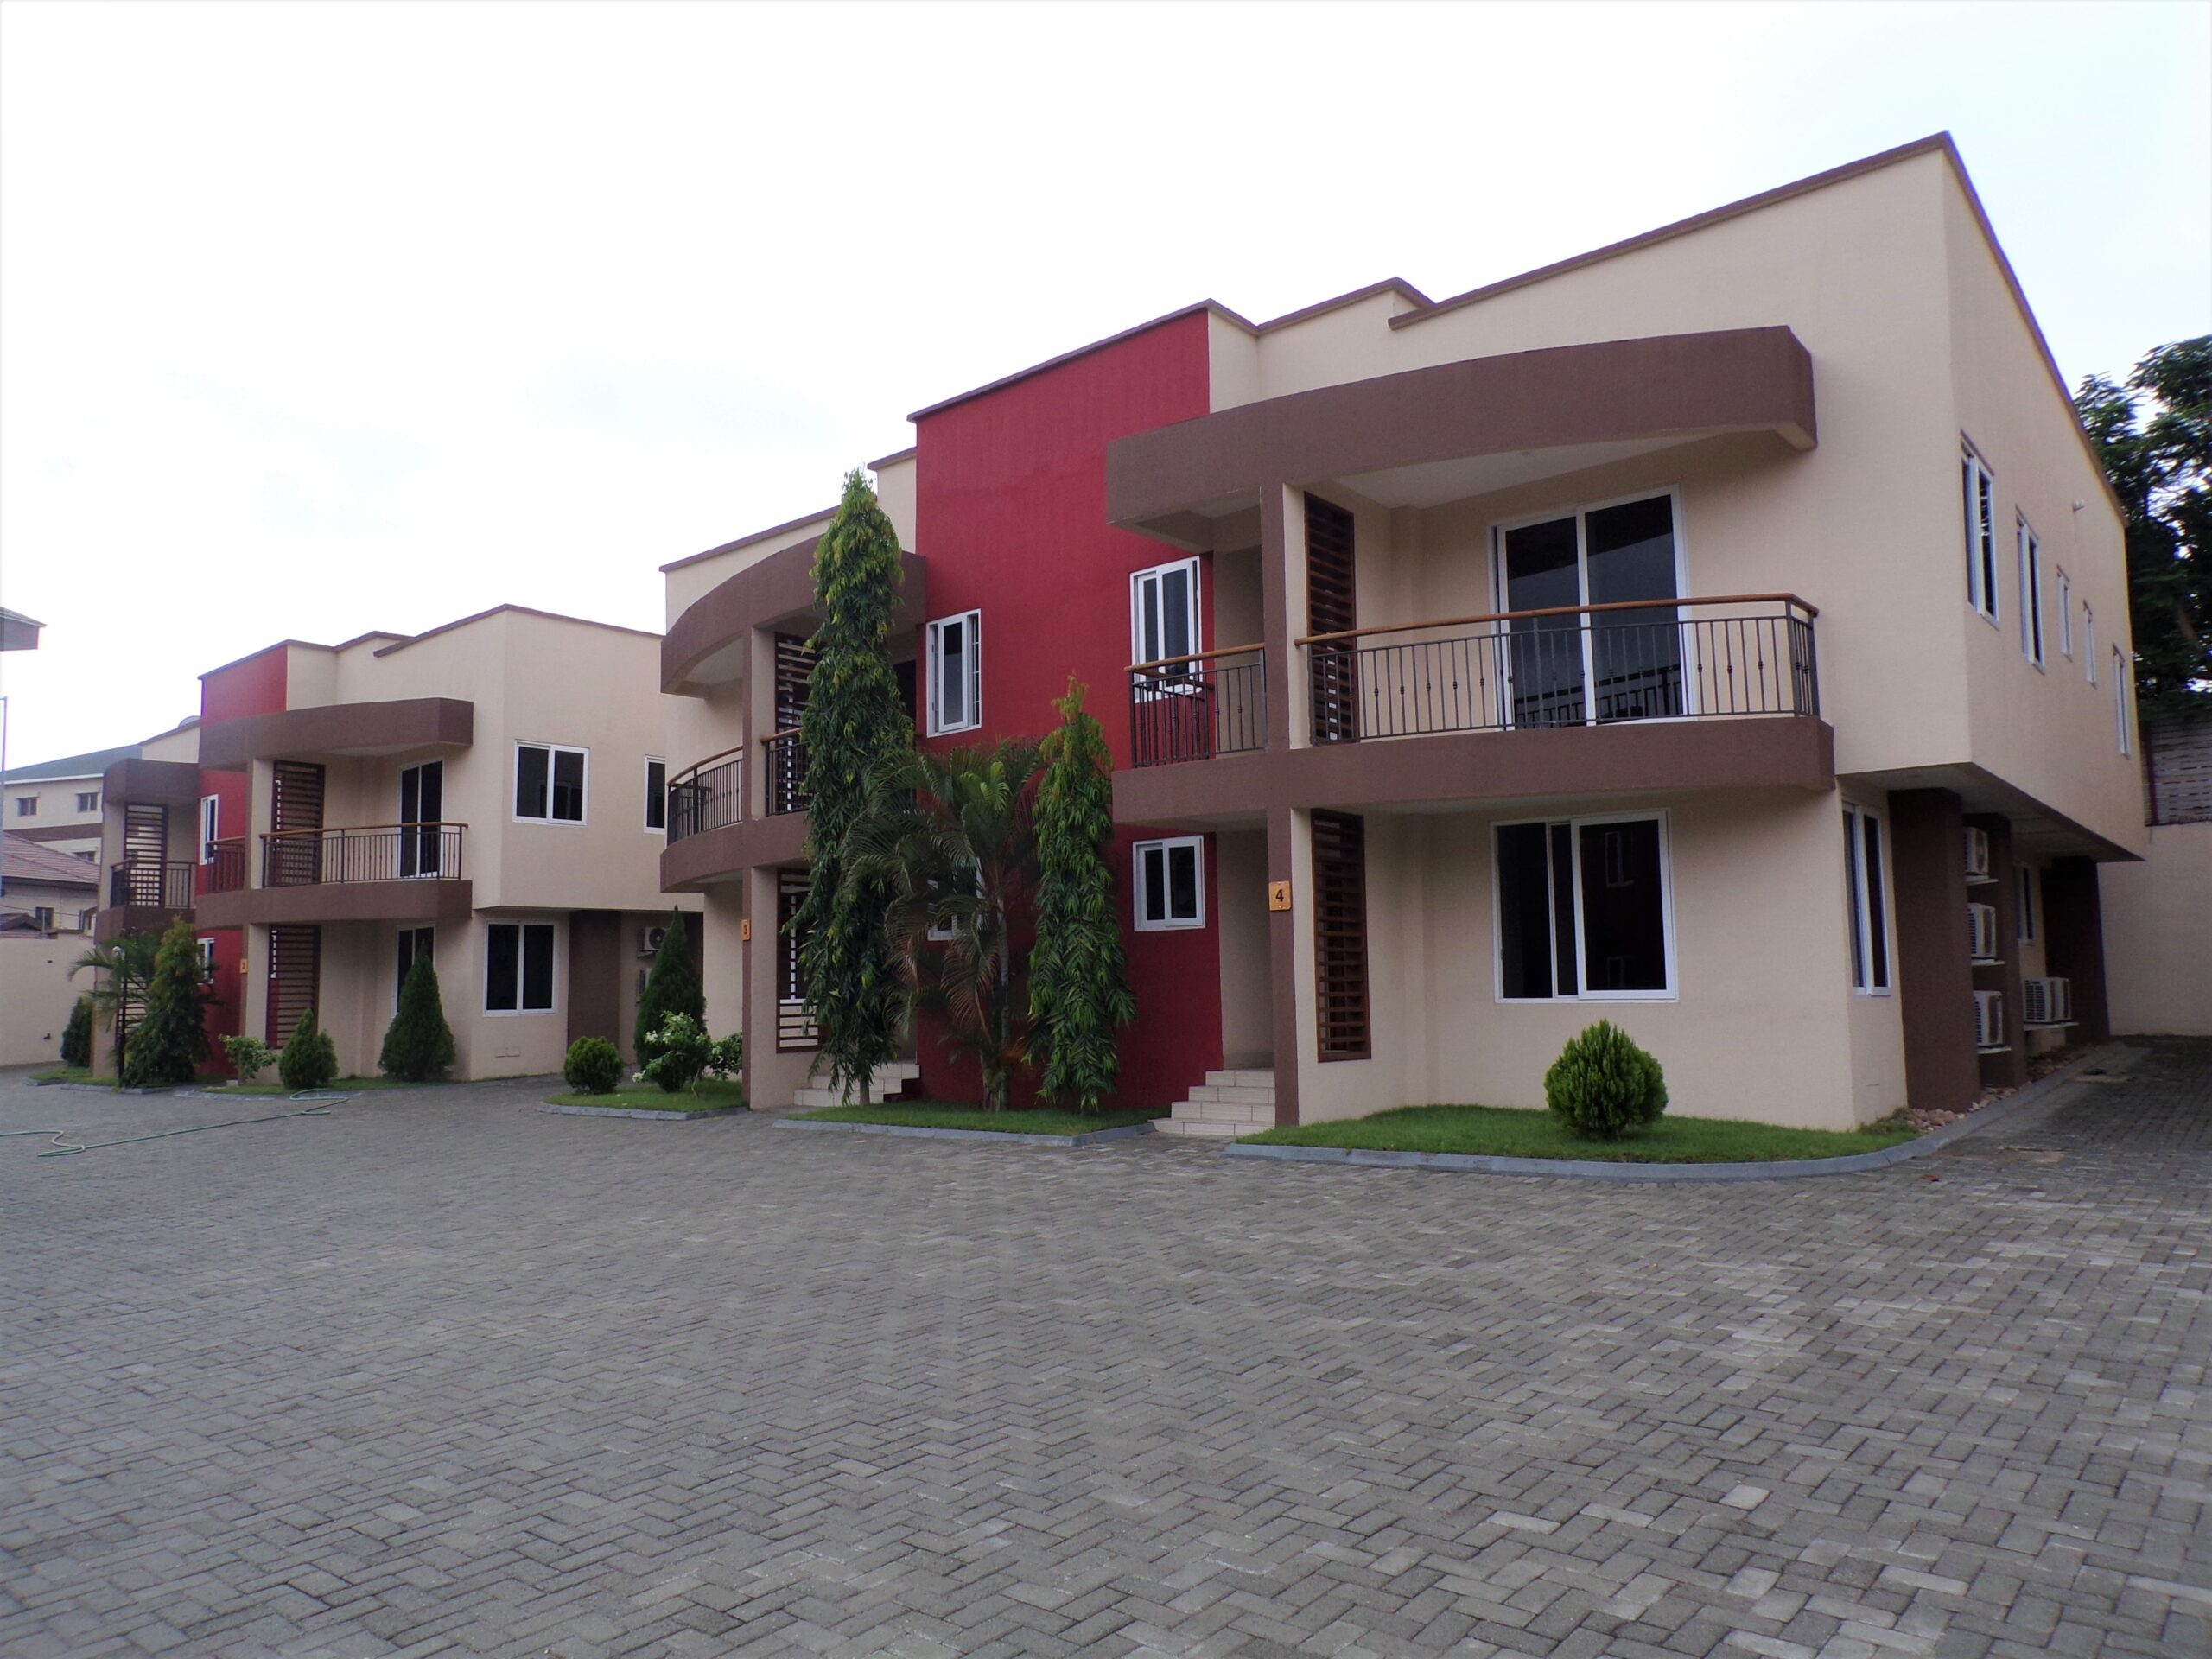 3 BEDROOM TOWNHOUSE FOR SALE AT CANTONMENTS